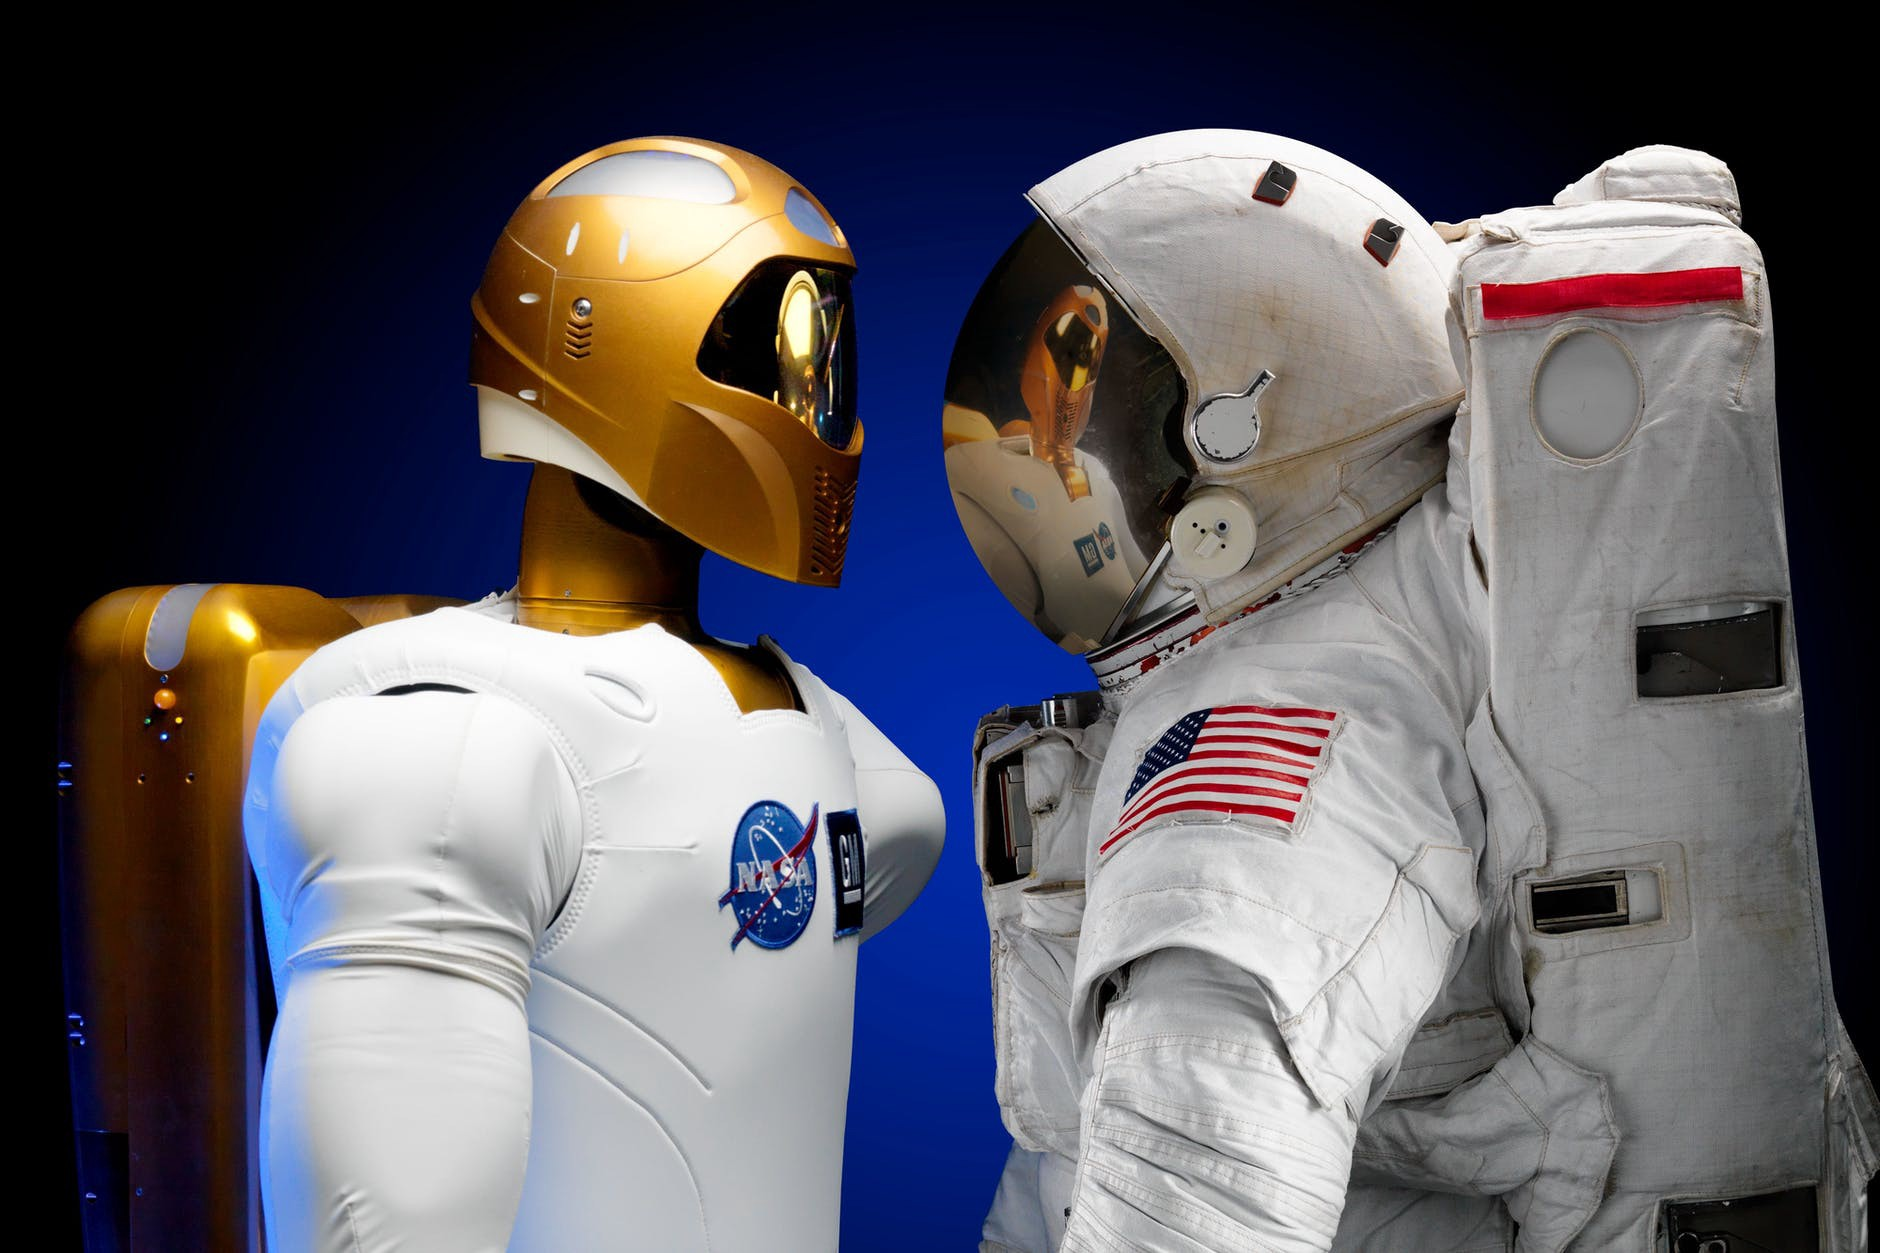 A robot and an astronaut staring at each other